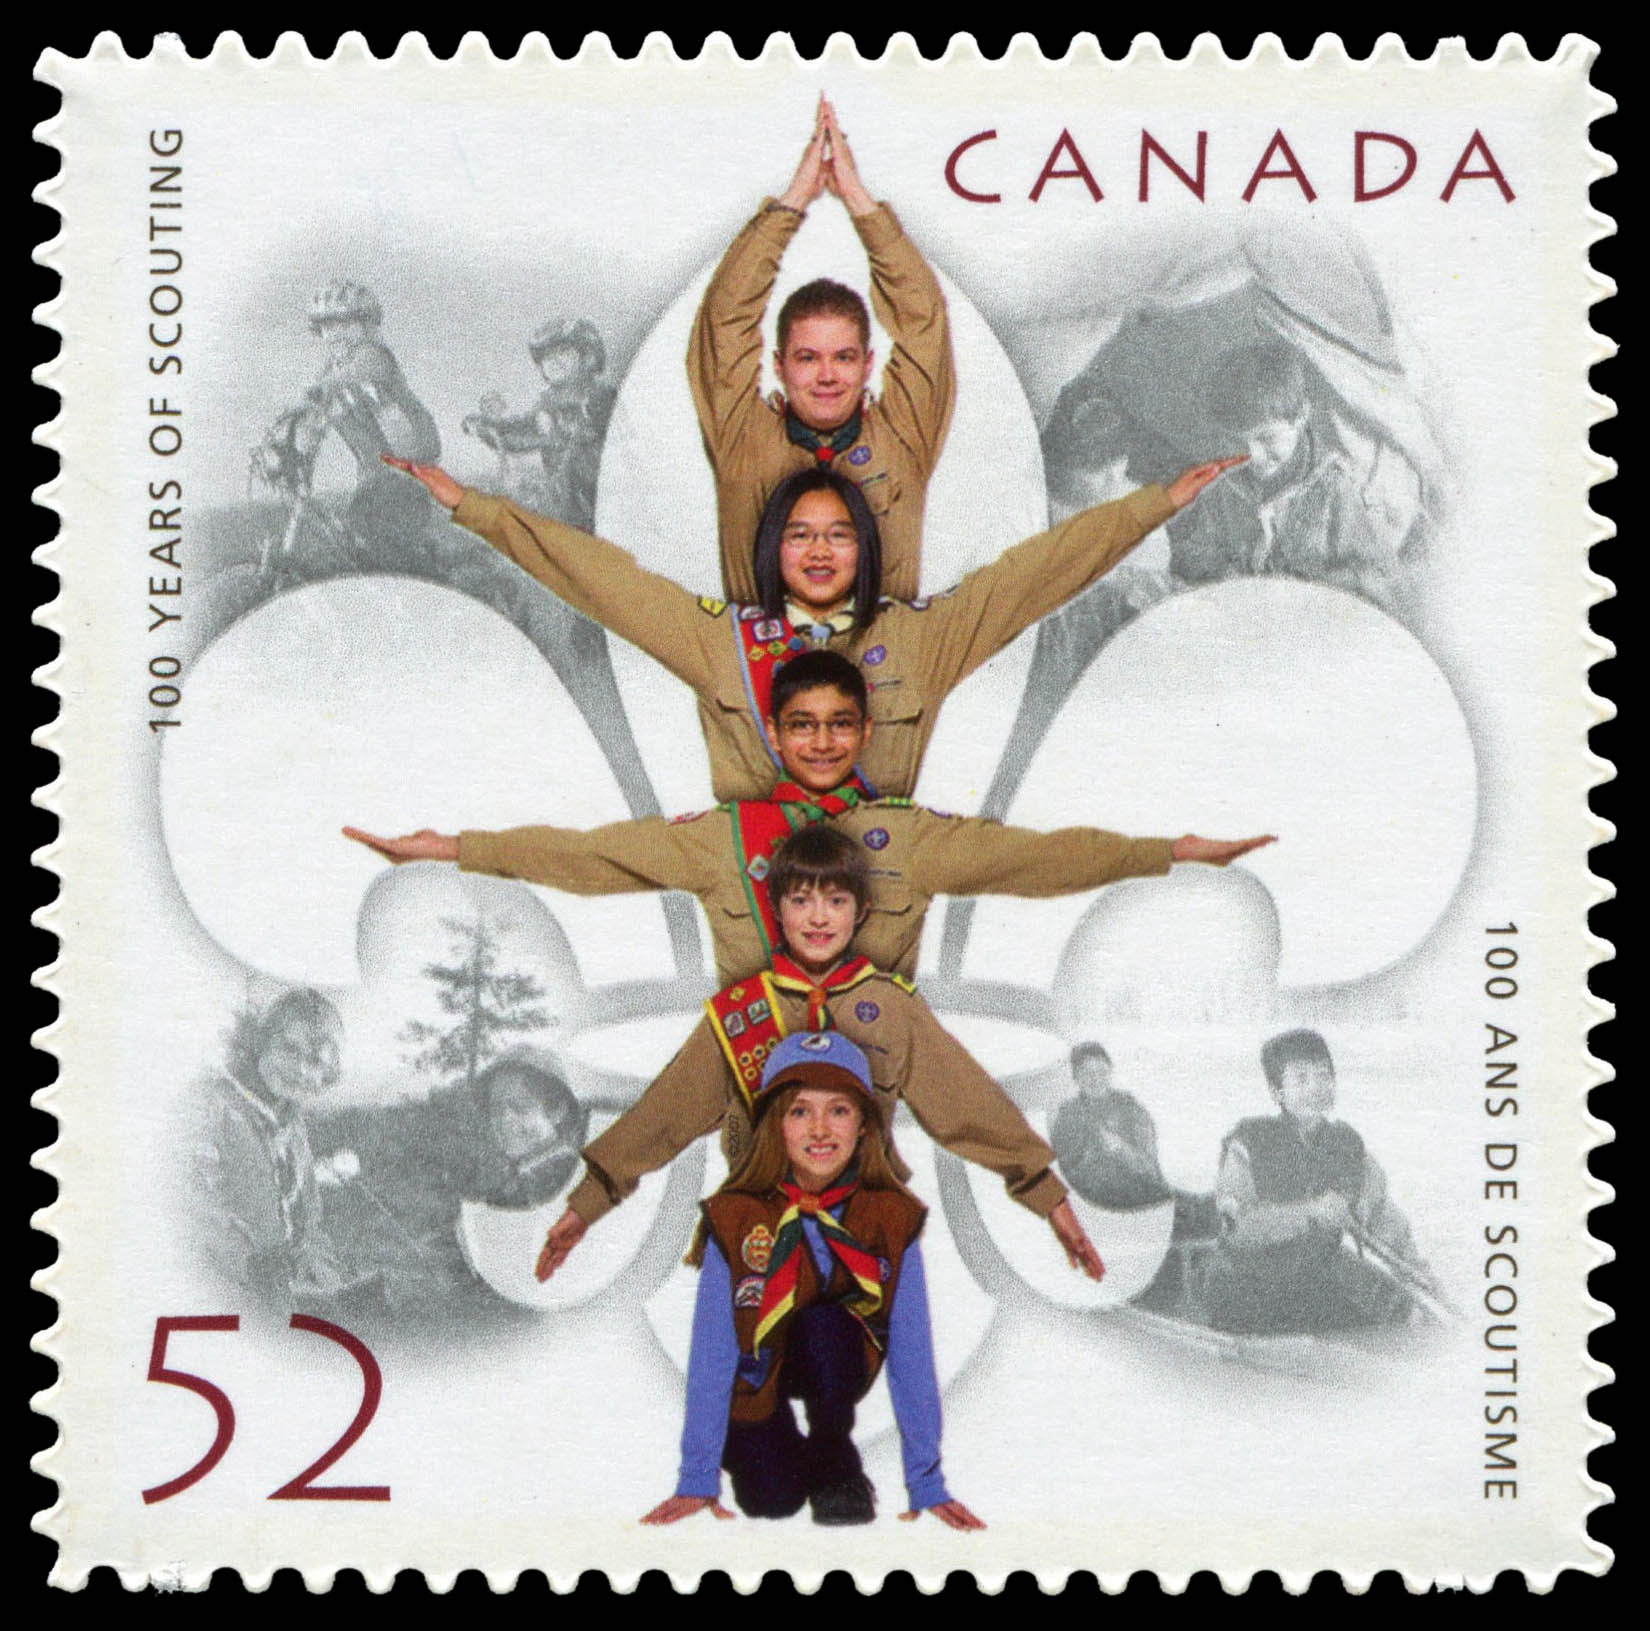 100 years of Scouting Canada Postage Stamp